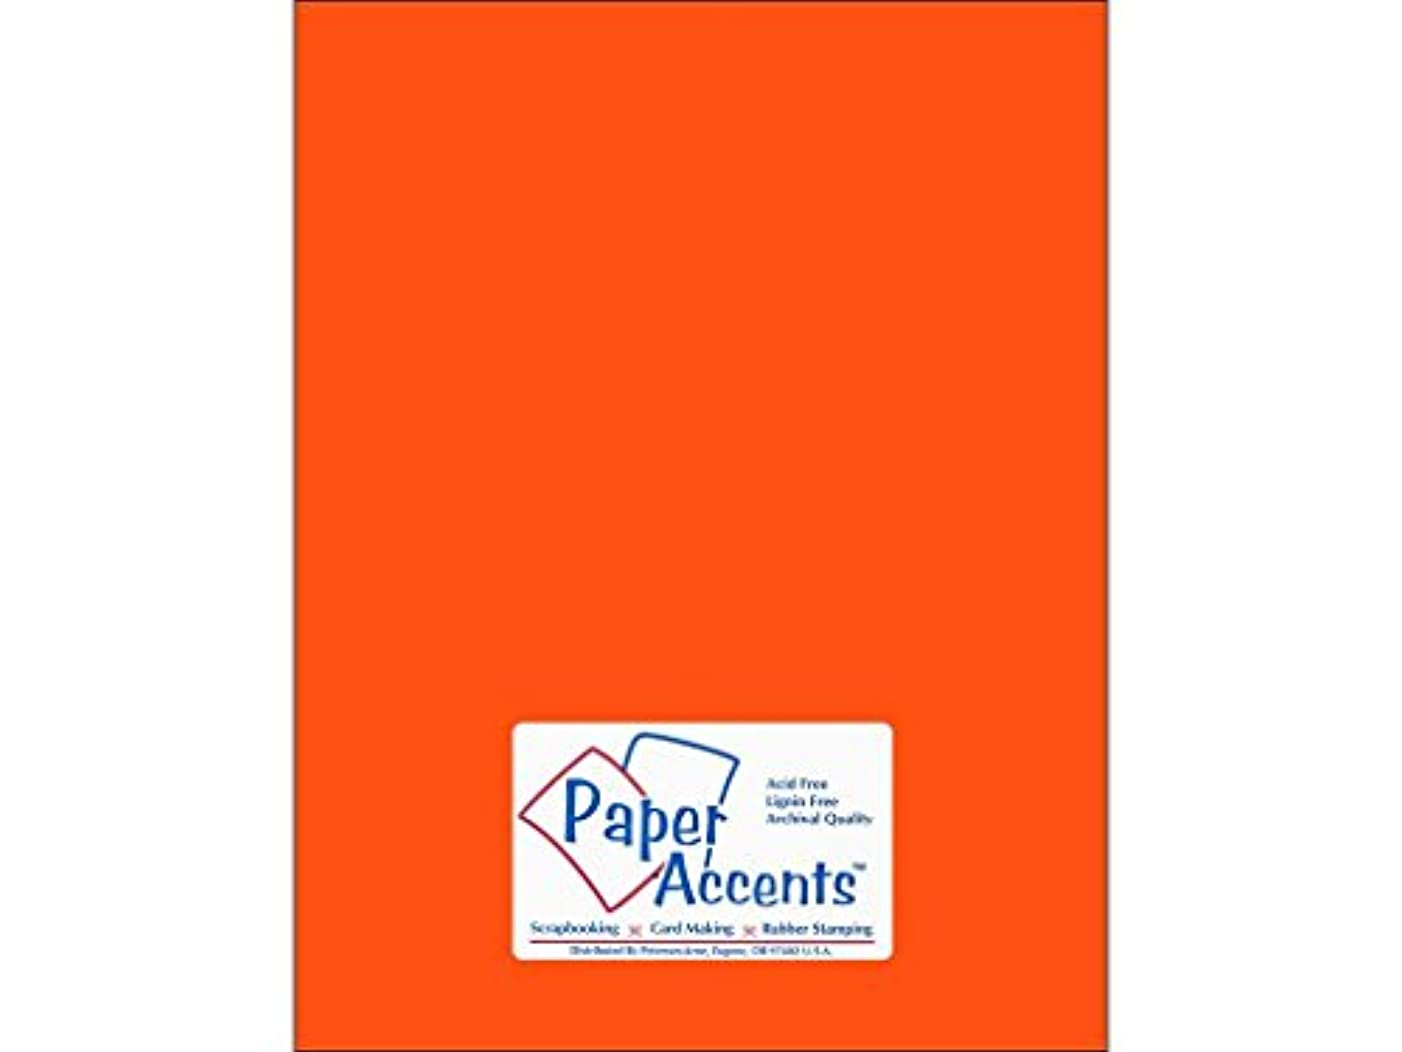 Accent Design Paper Accents Cdstk Smooth 8.5x11 65# Electric Orange